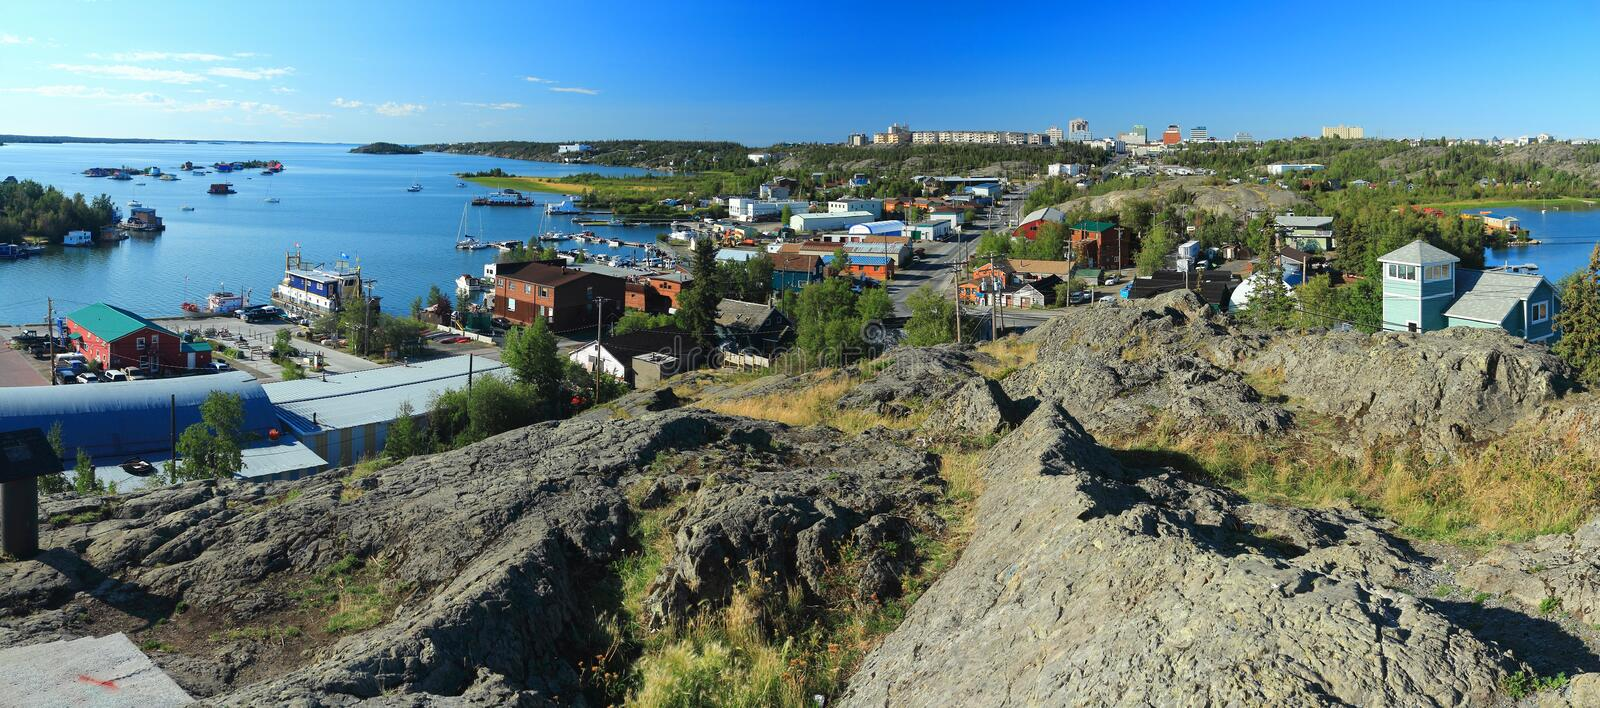 Panorama of Old Town and North Arm of Great Slave Lake from Bushpilot Monument, Yellowknife, Northwest Territories, Canada. The Bush Pilots Monument was erected royalty free stock photos